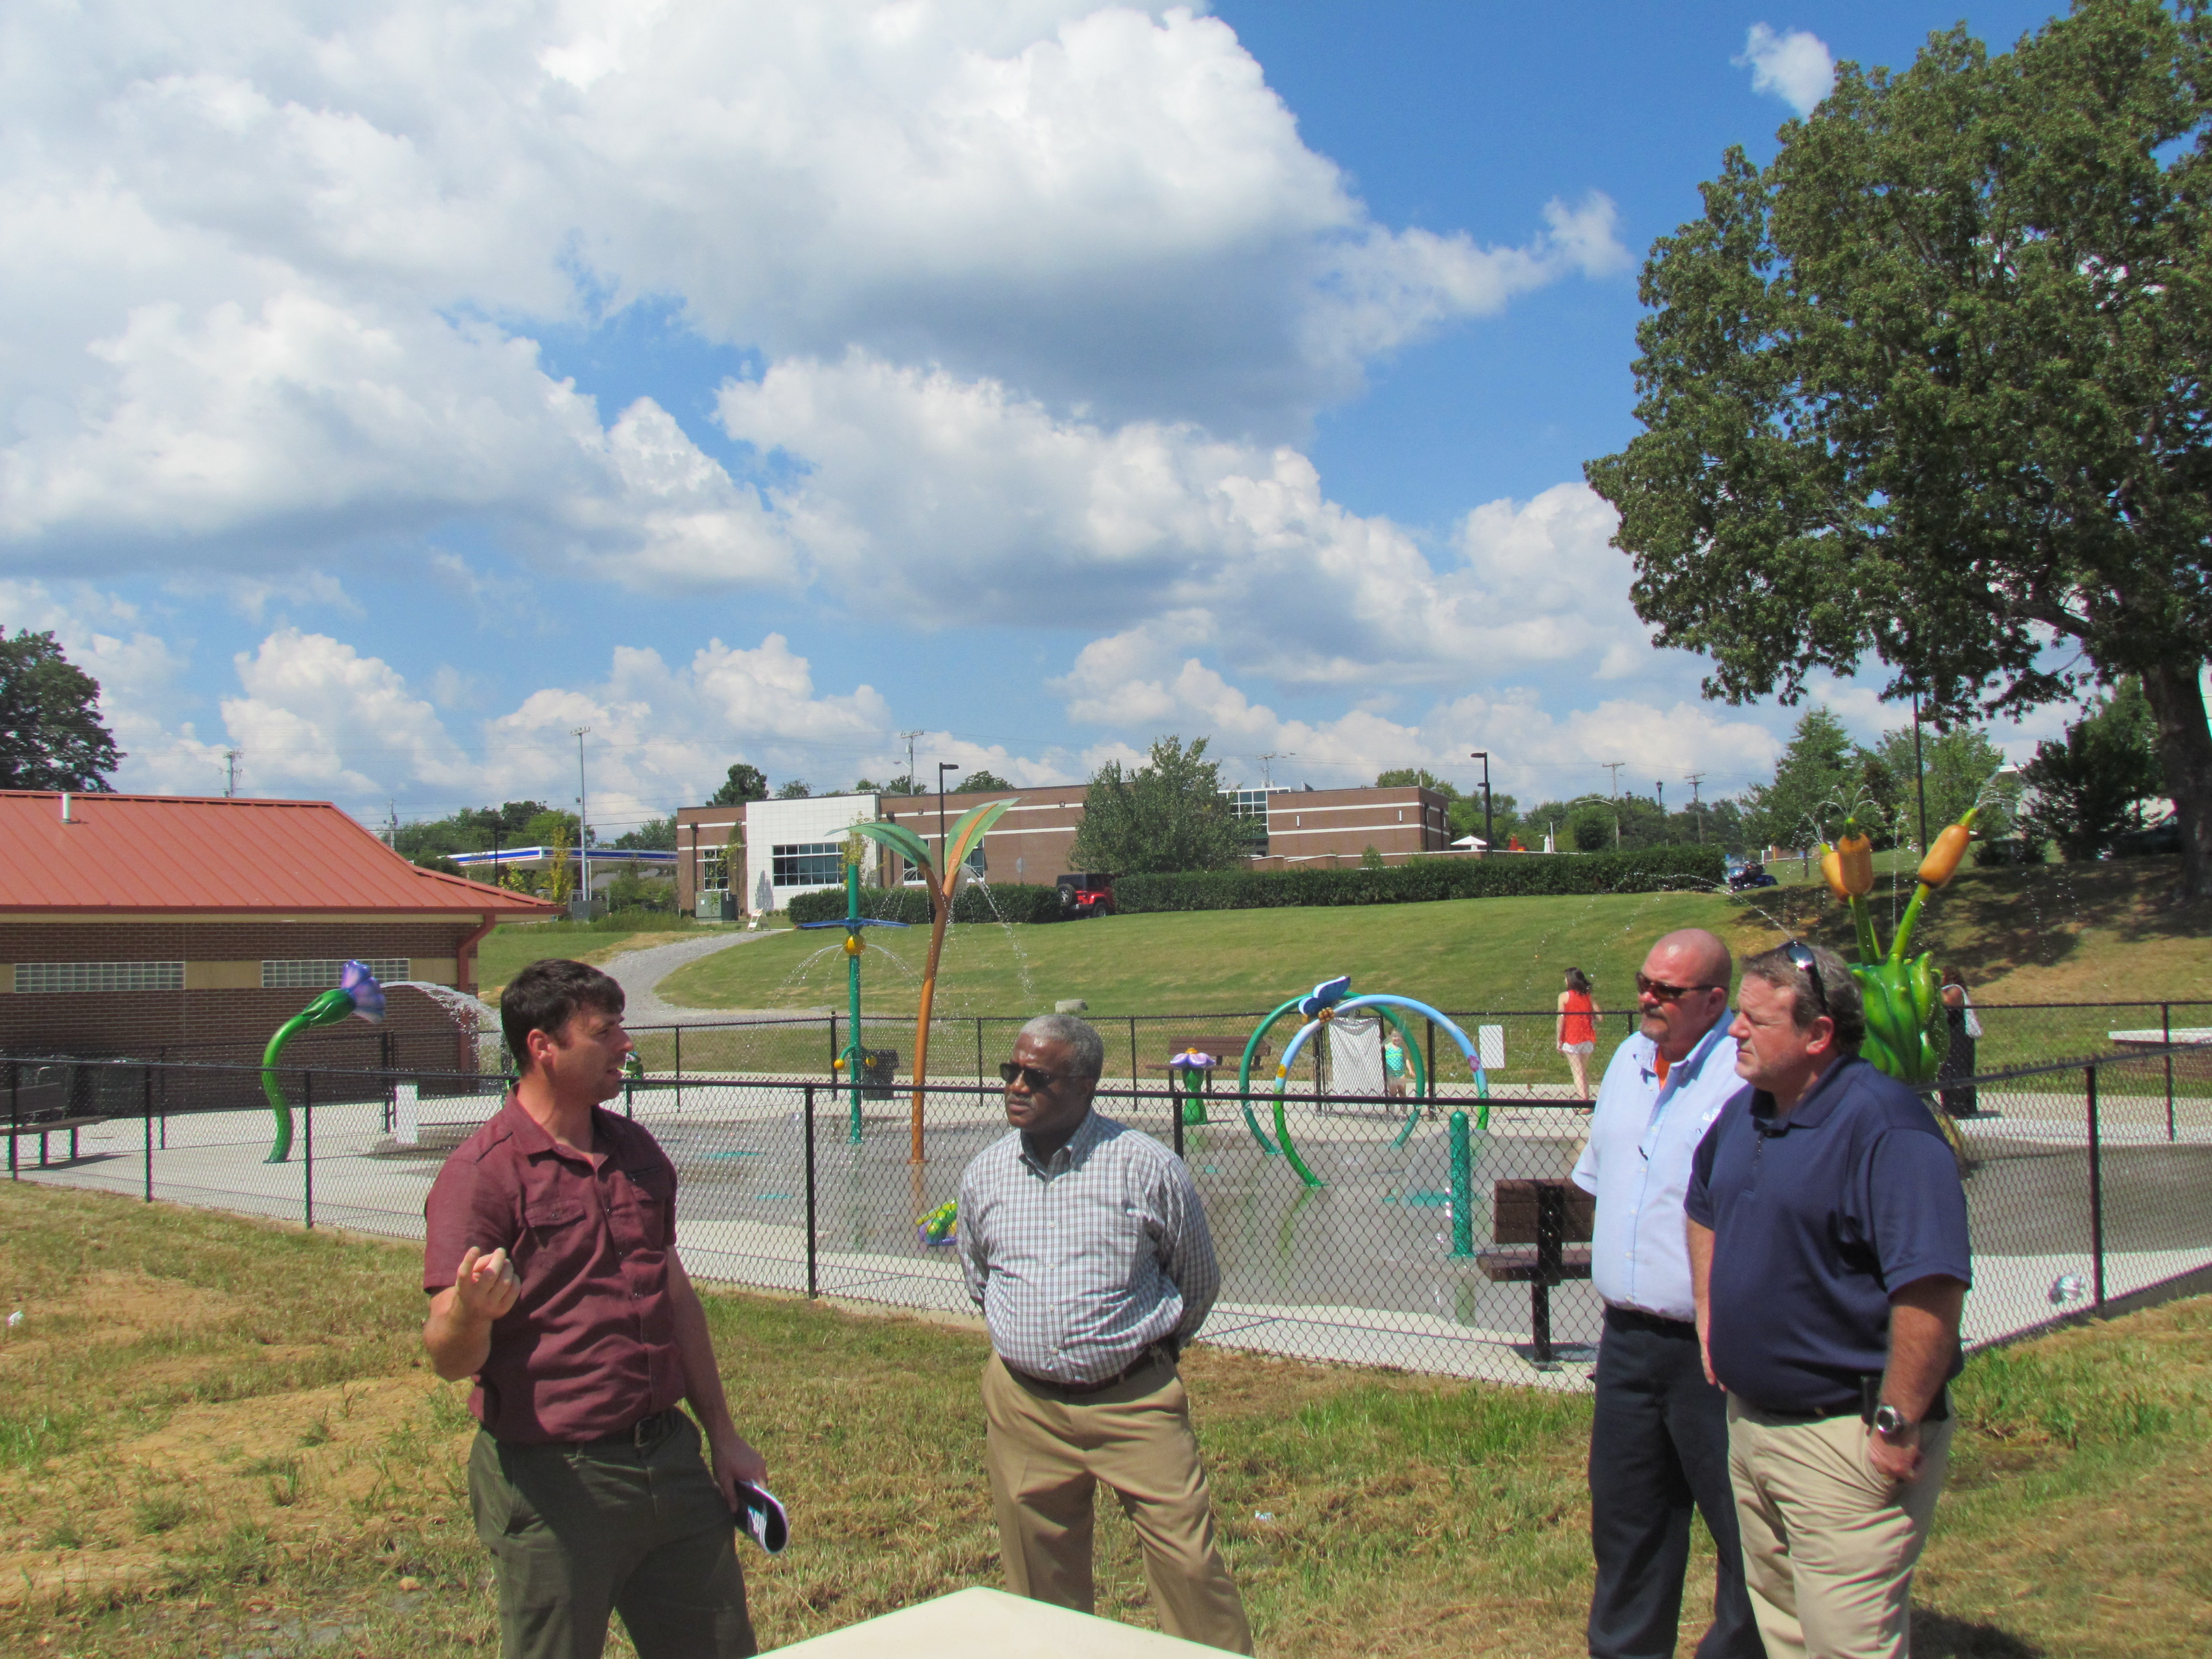 image of staff and Officals visiting a splash pad